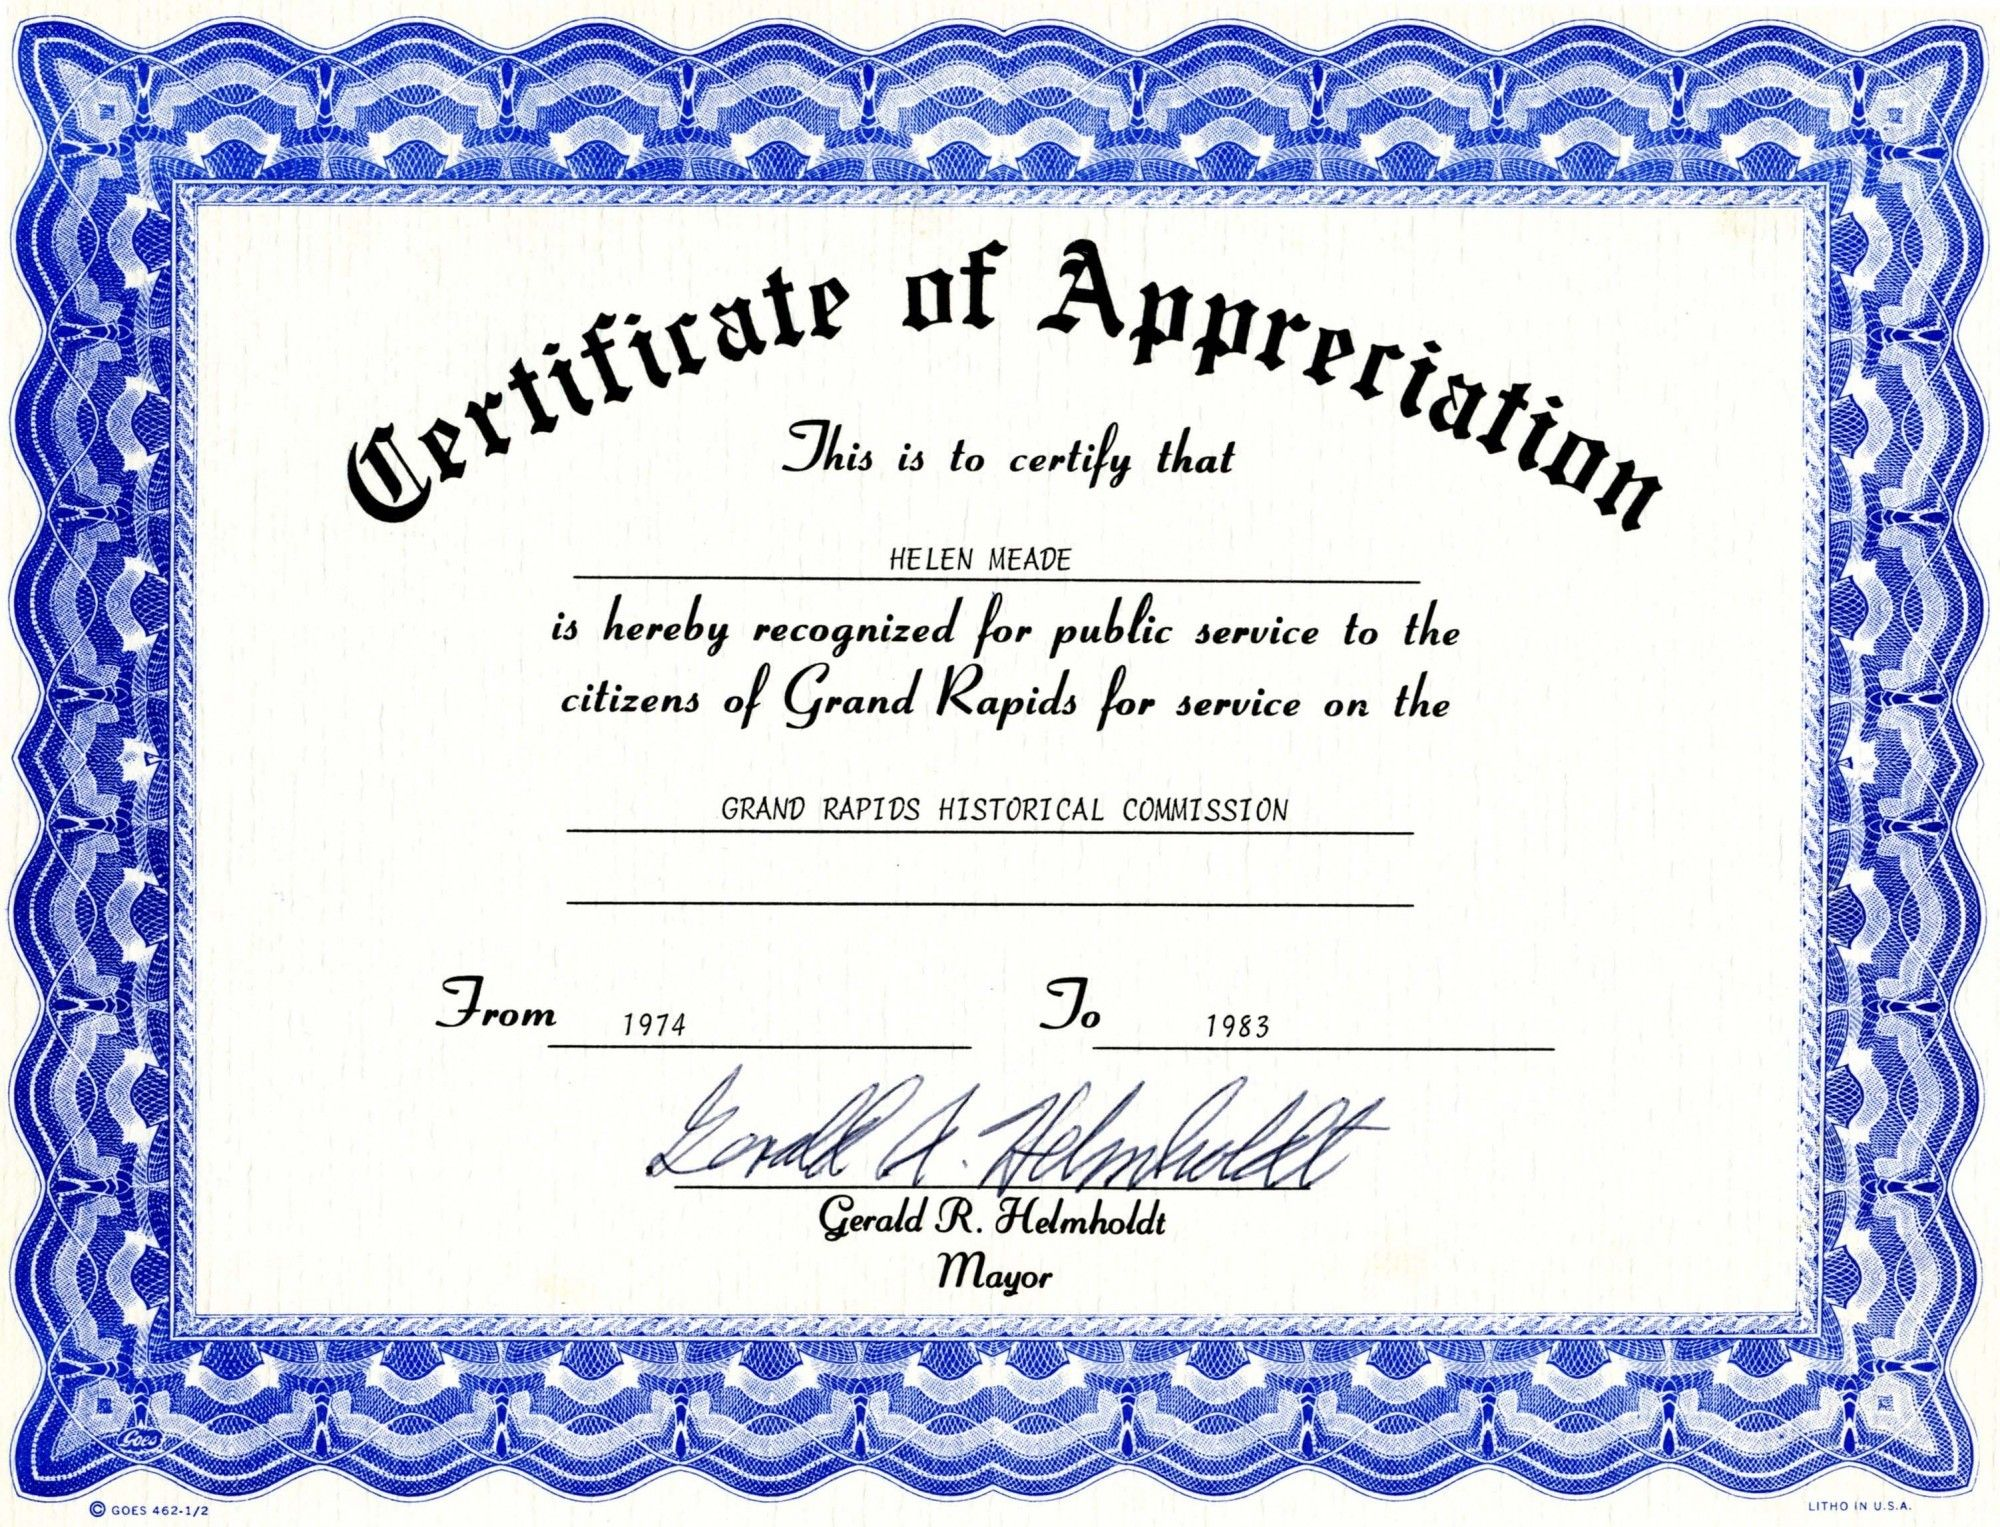 Wonderful Appreciation Certificate Templates Free Download | Besttemplates123 Intended For Certificate Templates For Free